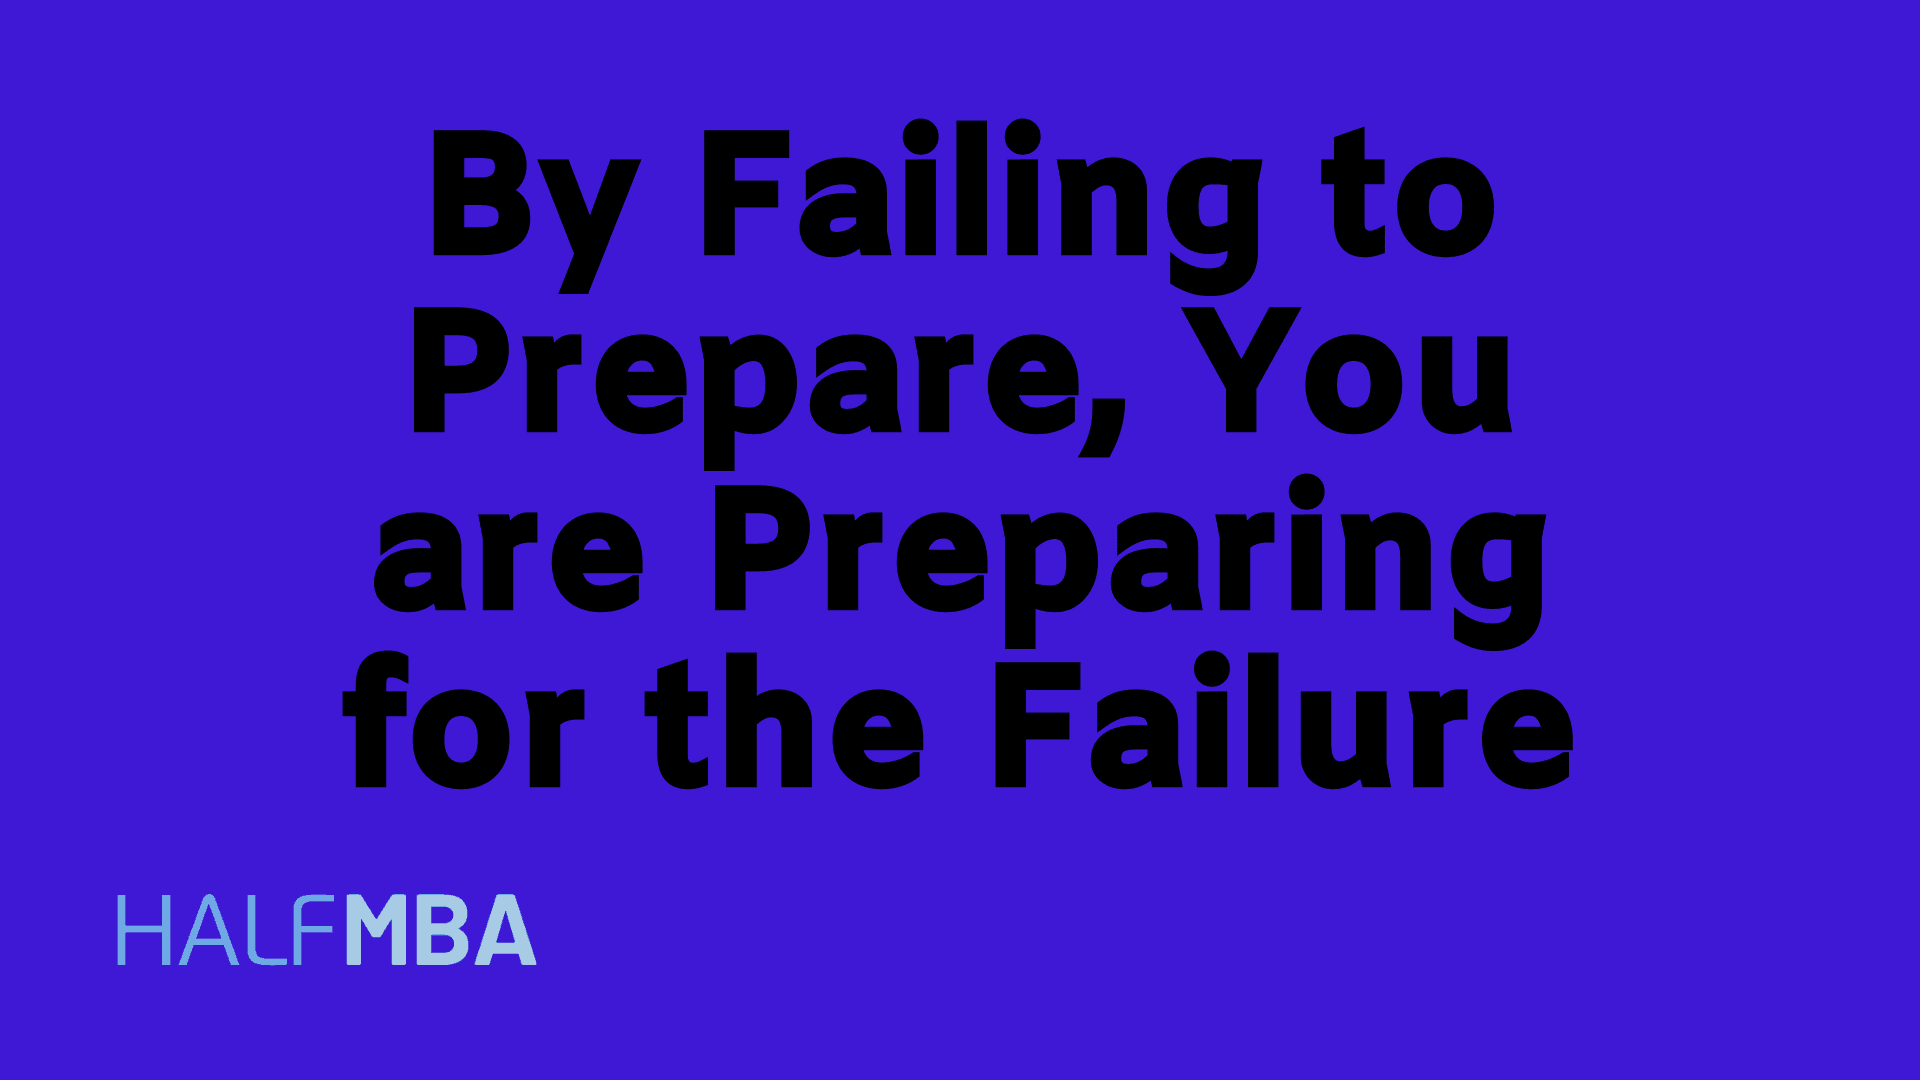 prepping for failure